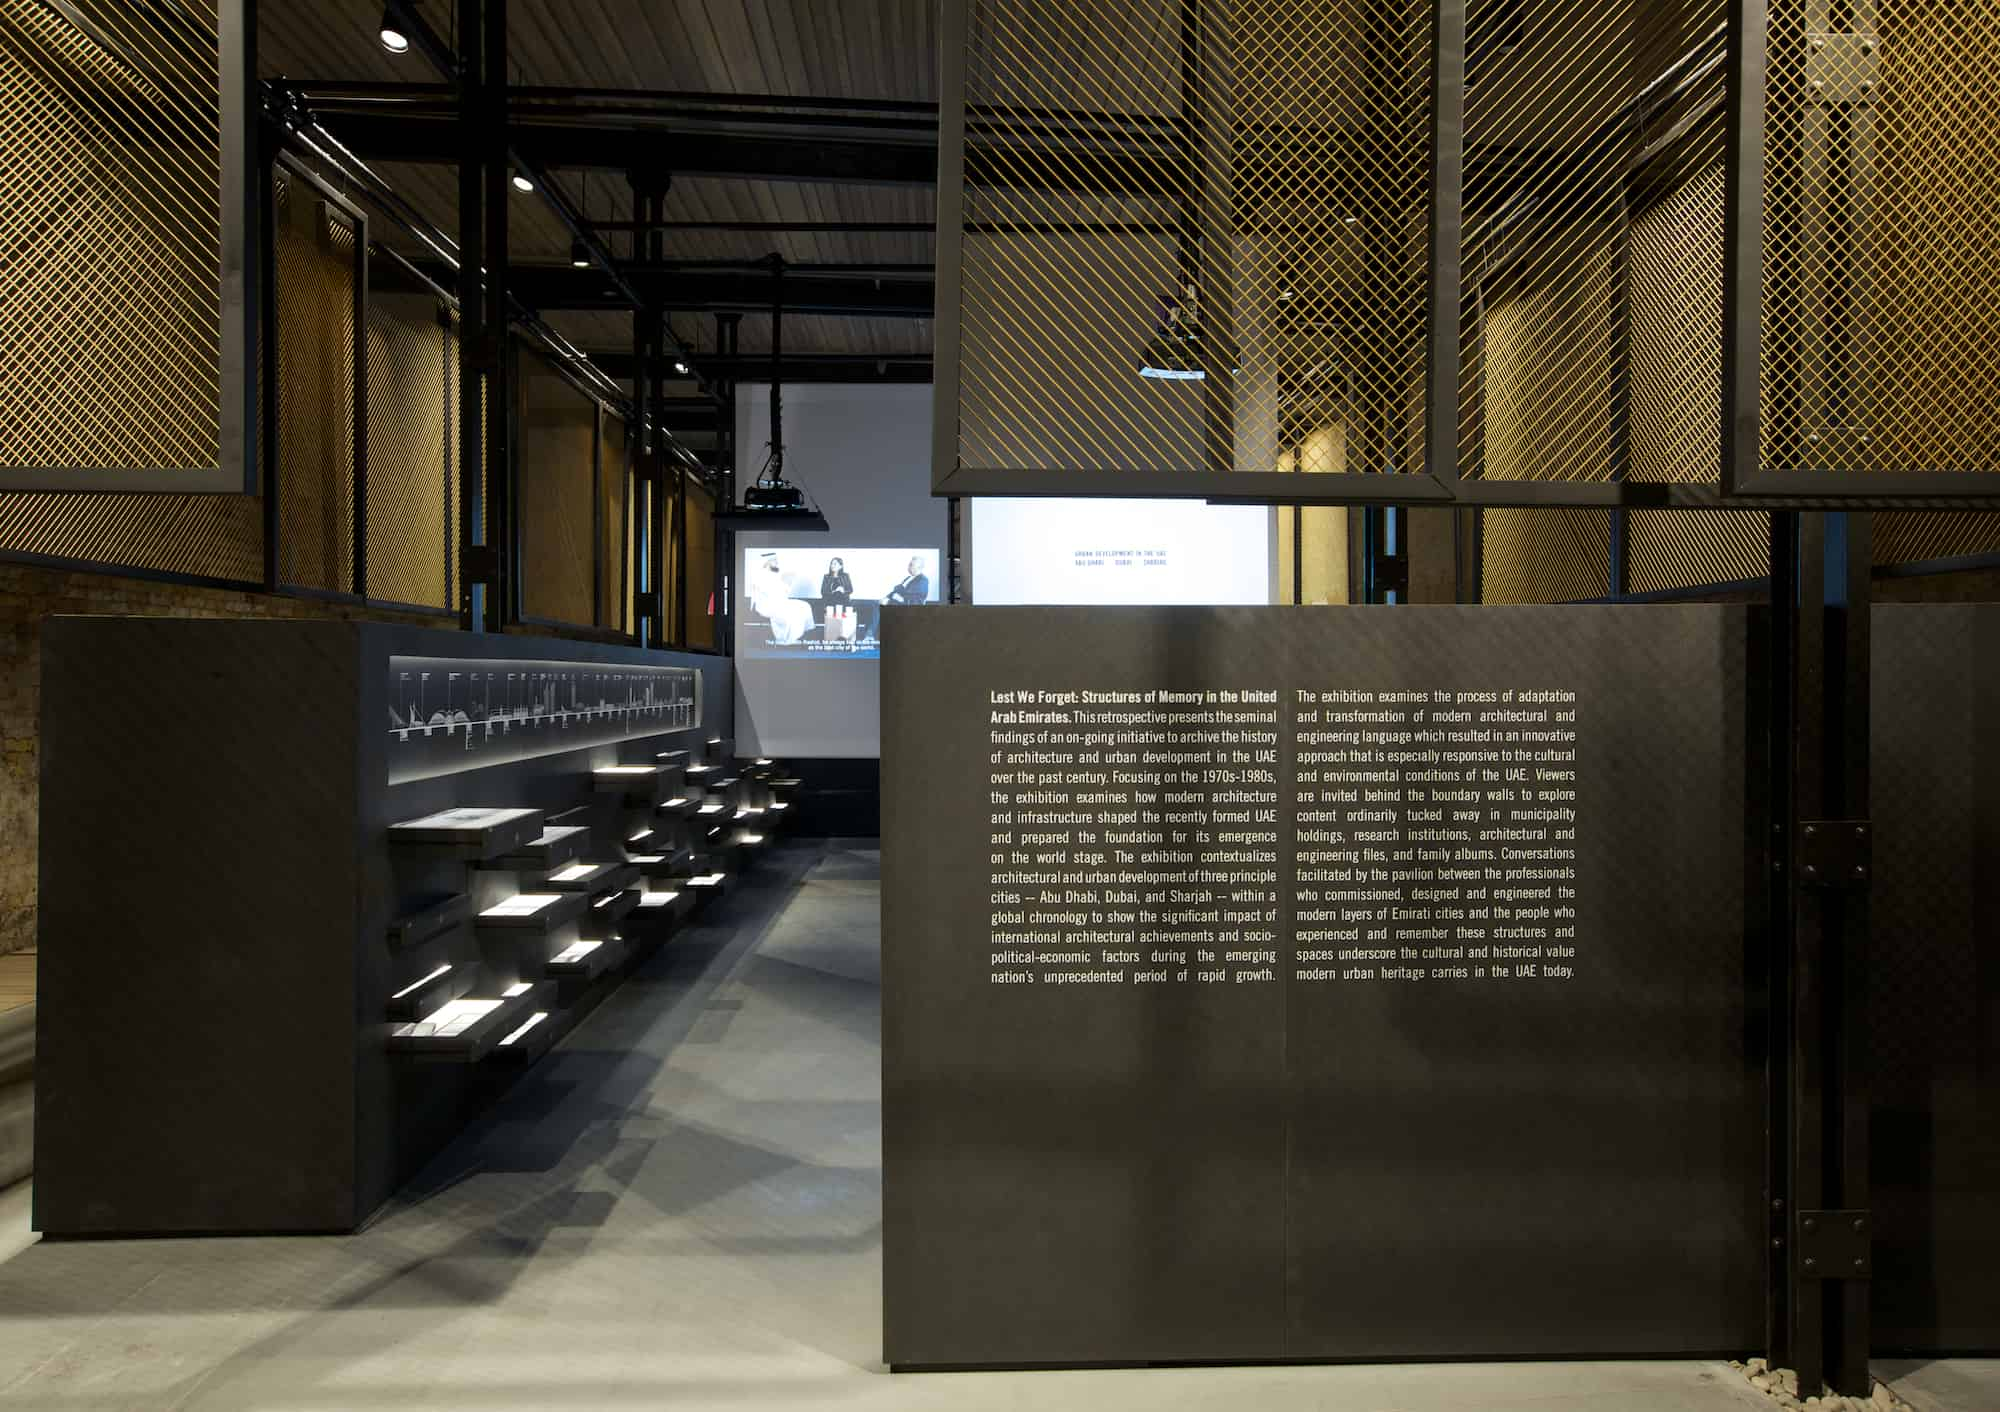 'Lest We Forget: Structures of Memory in the UAE' exhibition at the 14th International Architecture Exhibition of la Biennale di Venezia.